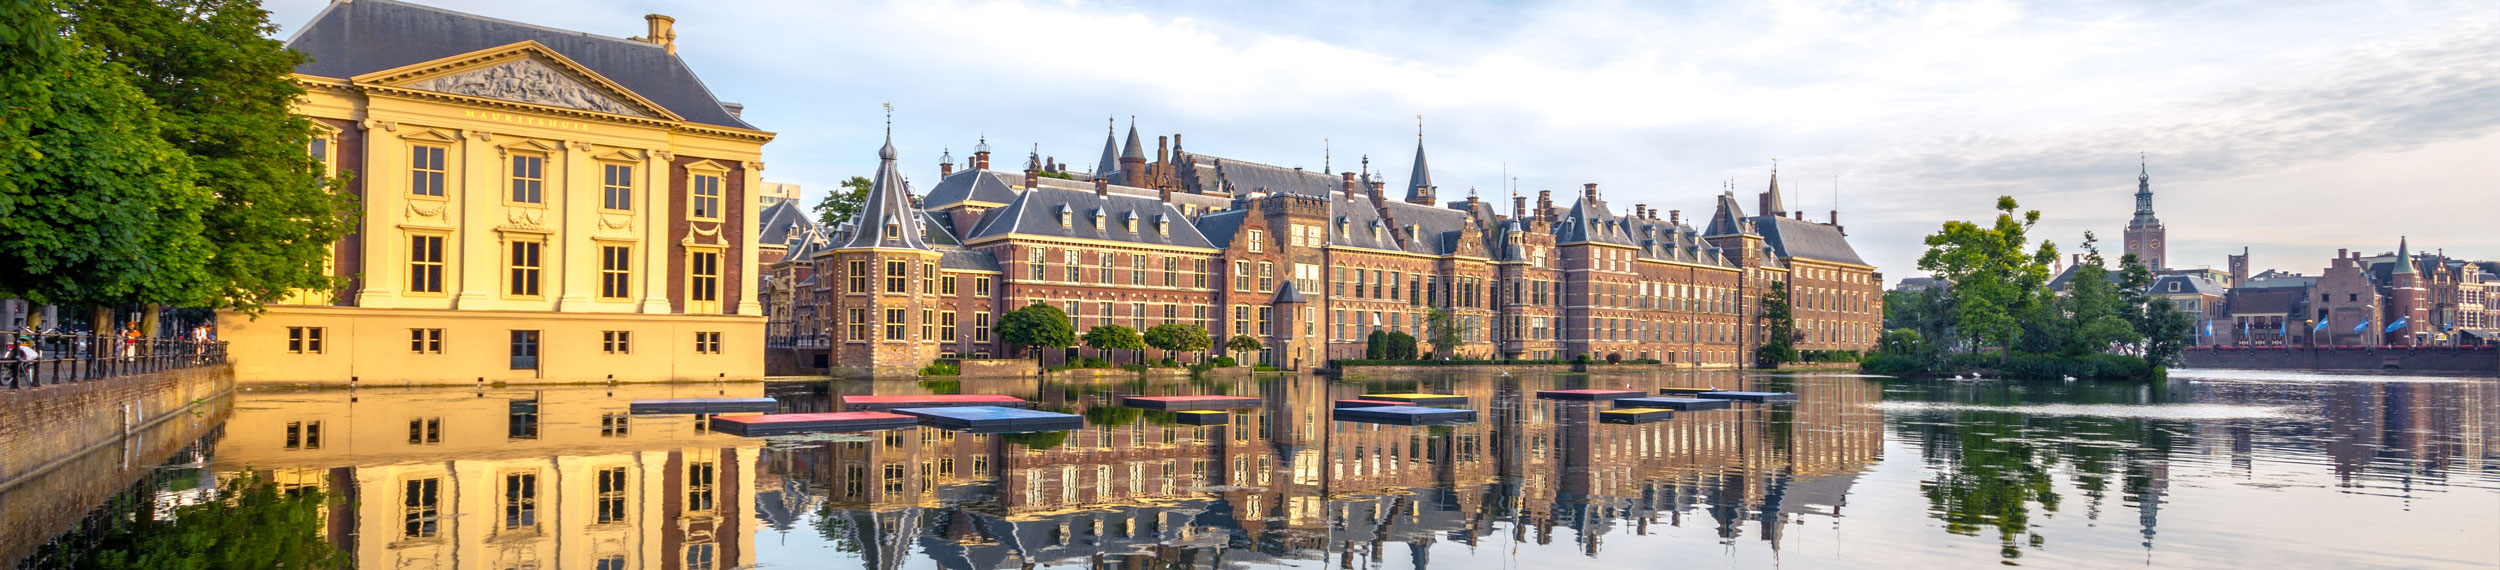 Landscape shot of the Hofvijver Pond (Court Pond) with the Binnenhof complex in The Hague, Netherlands